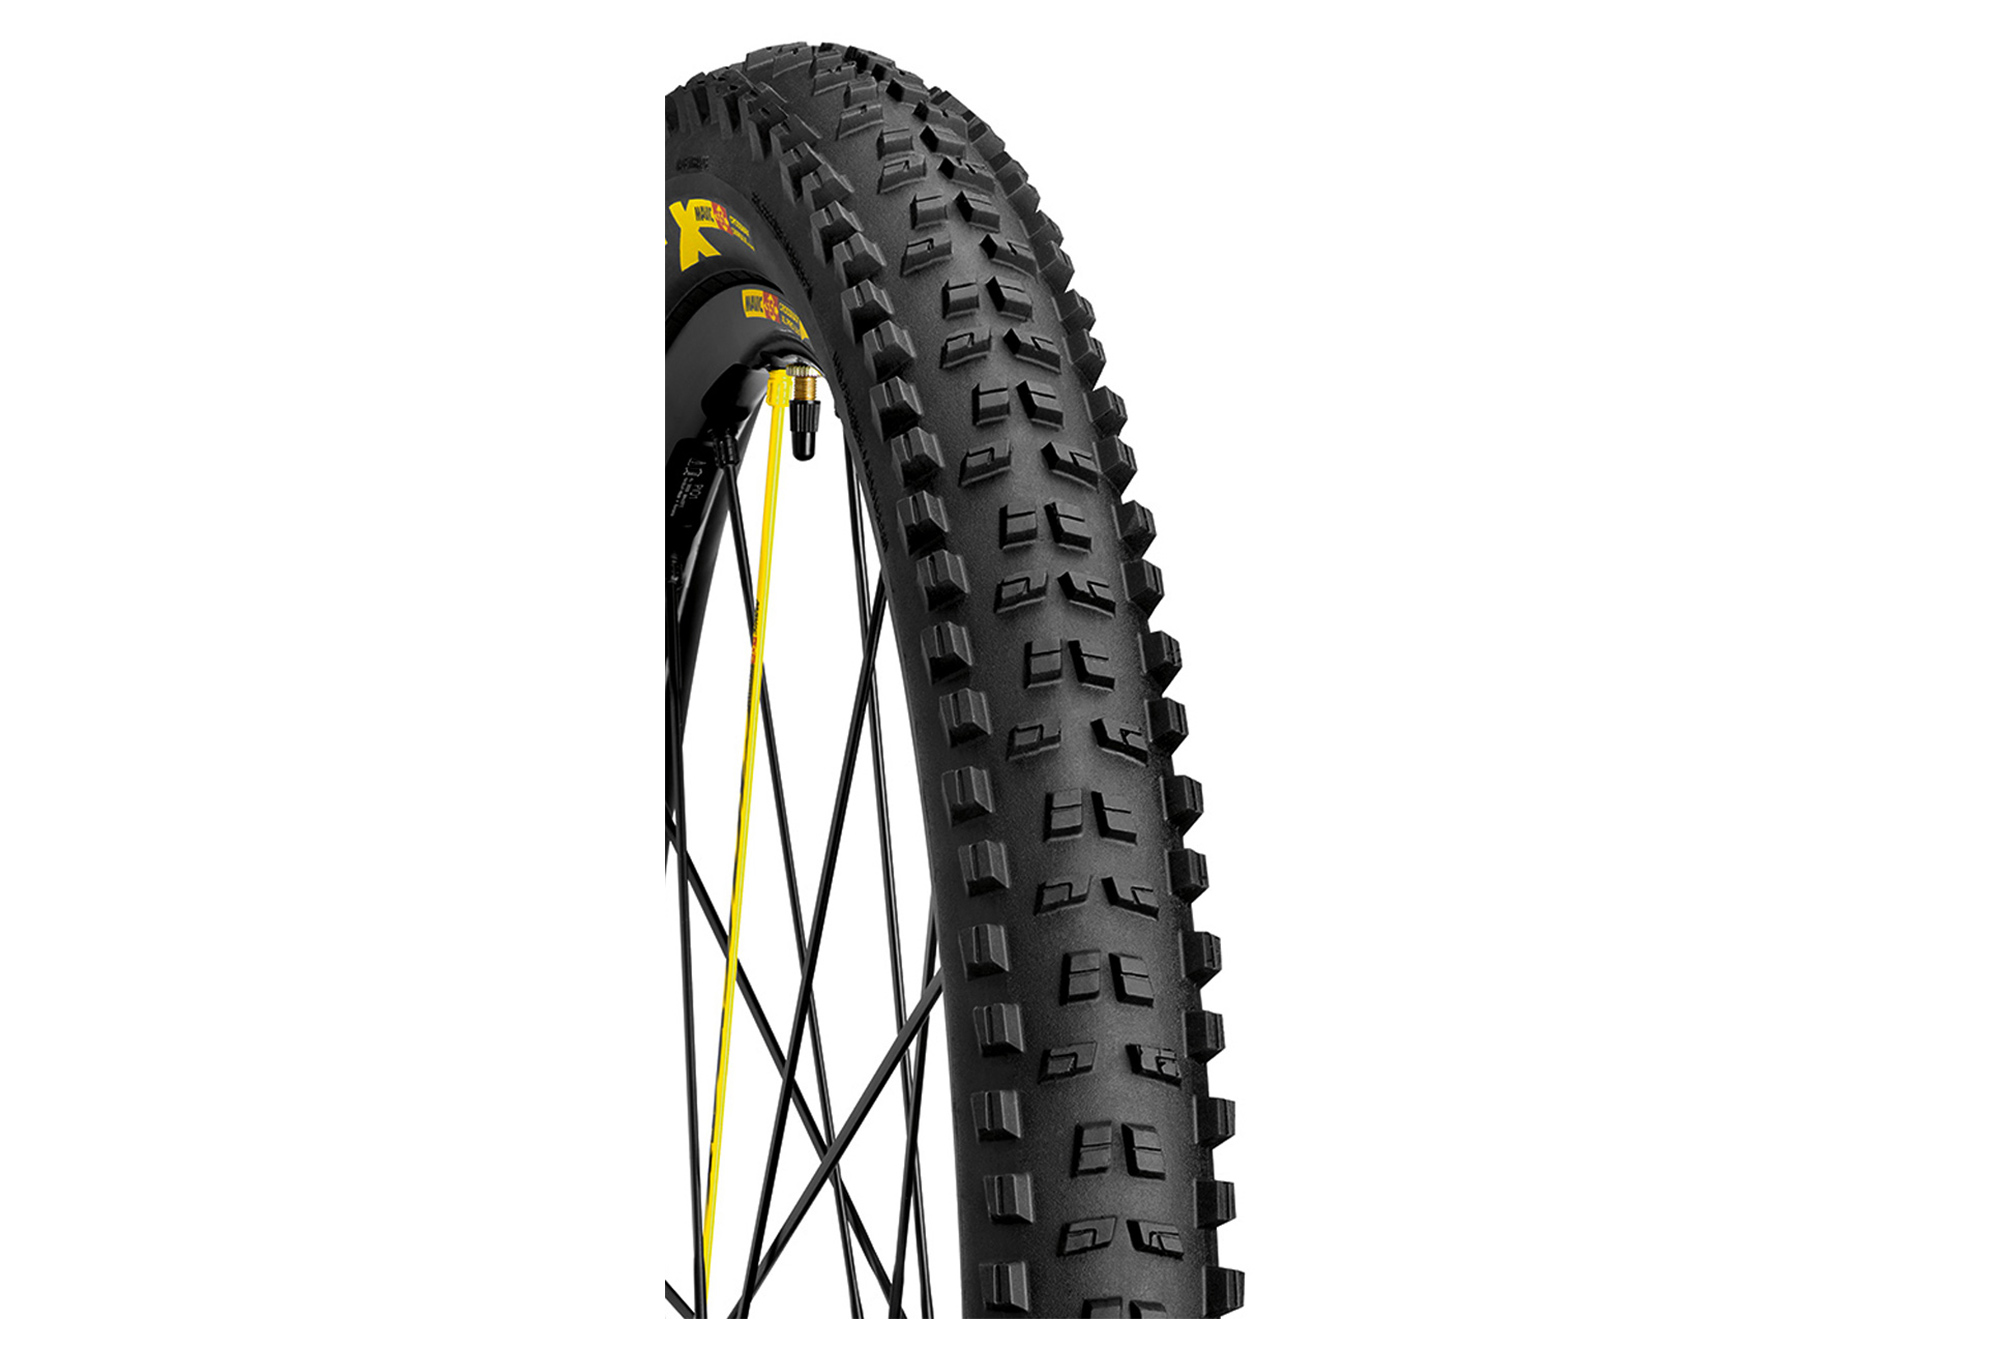 mavic pneu crossmax charge xl 29 ust tubeless ready souple guard 2 scc. Black Bedroom Furniture Sets. Home Design Ideas